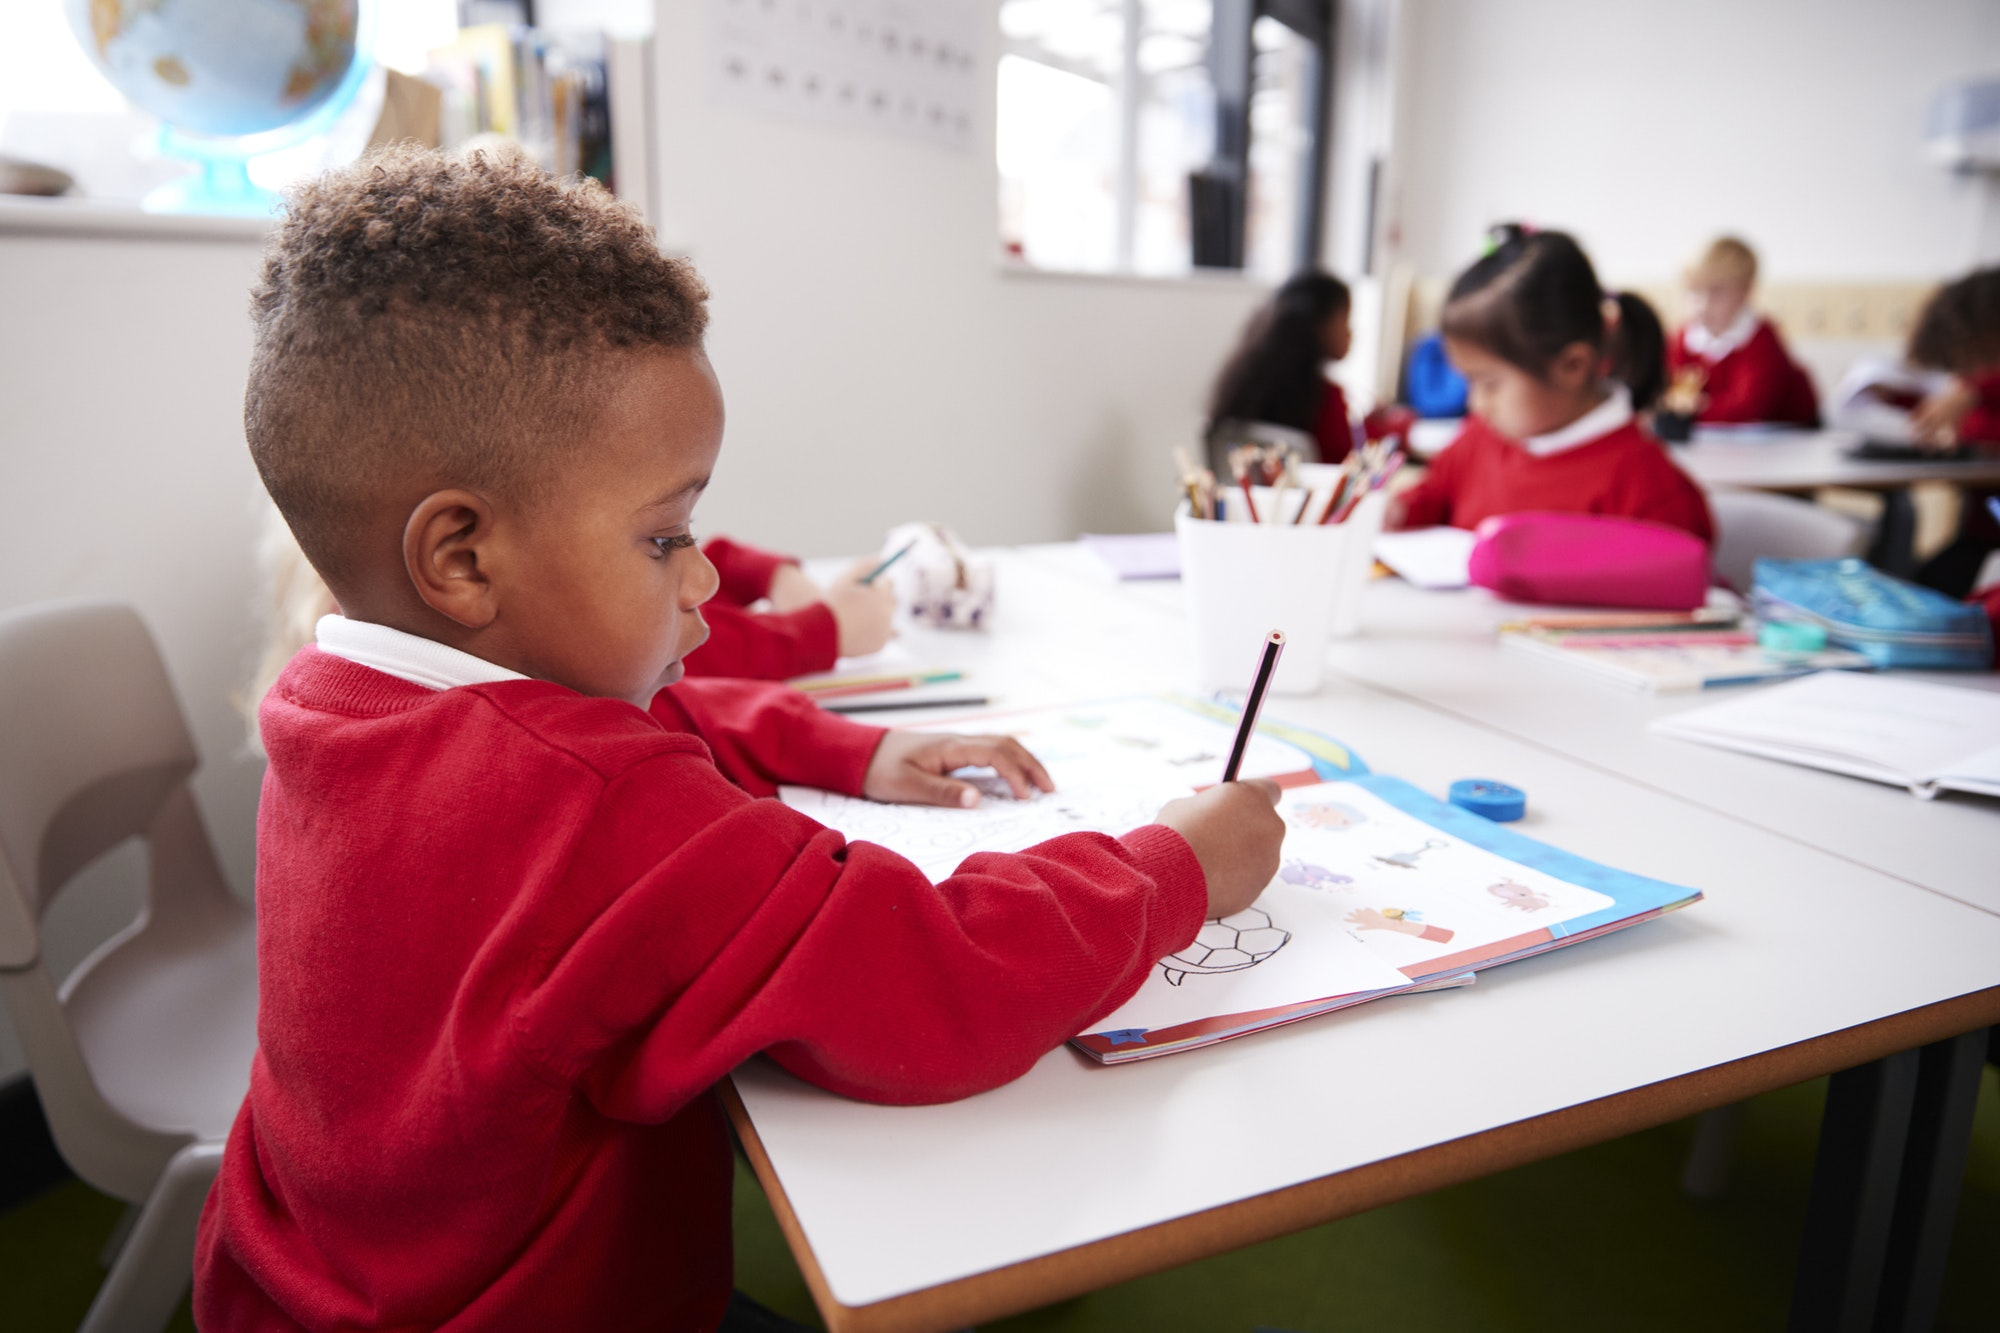 Young black schoolboy wearing school uniform sitting at a desk in an infant school classroom drawing